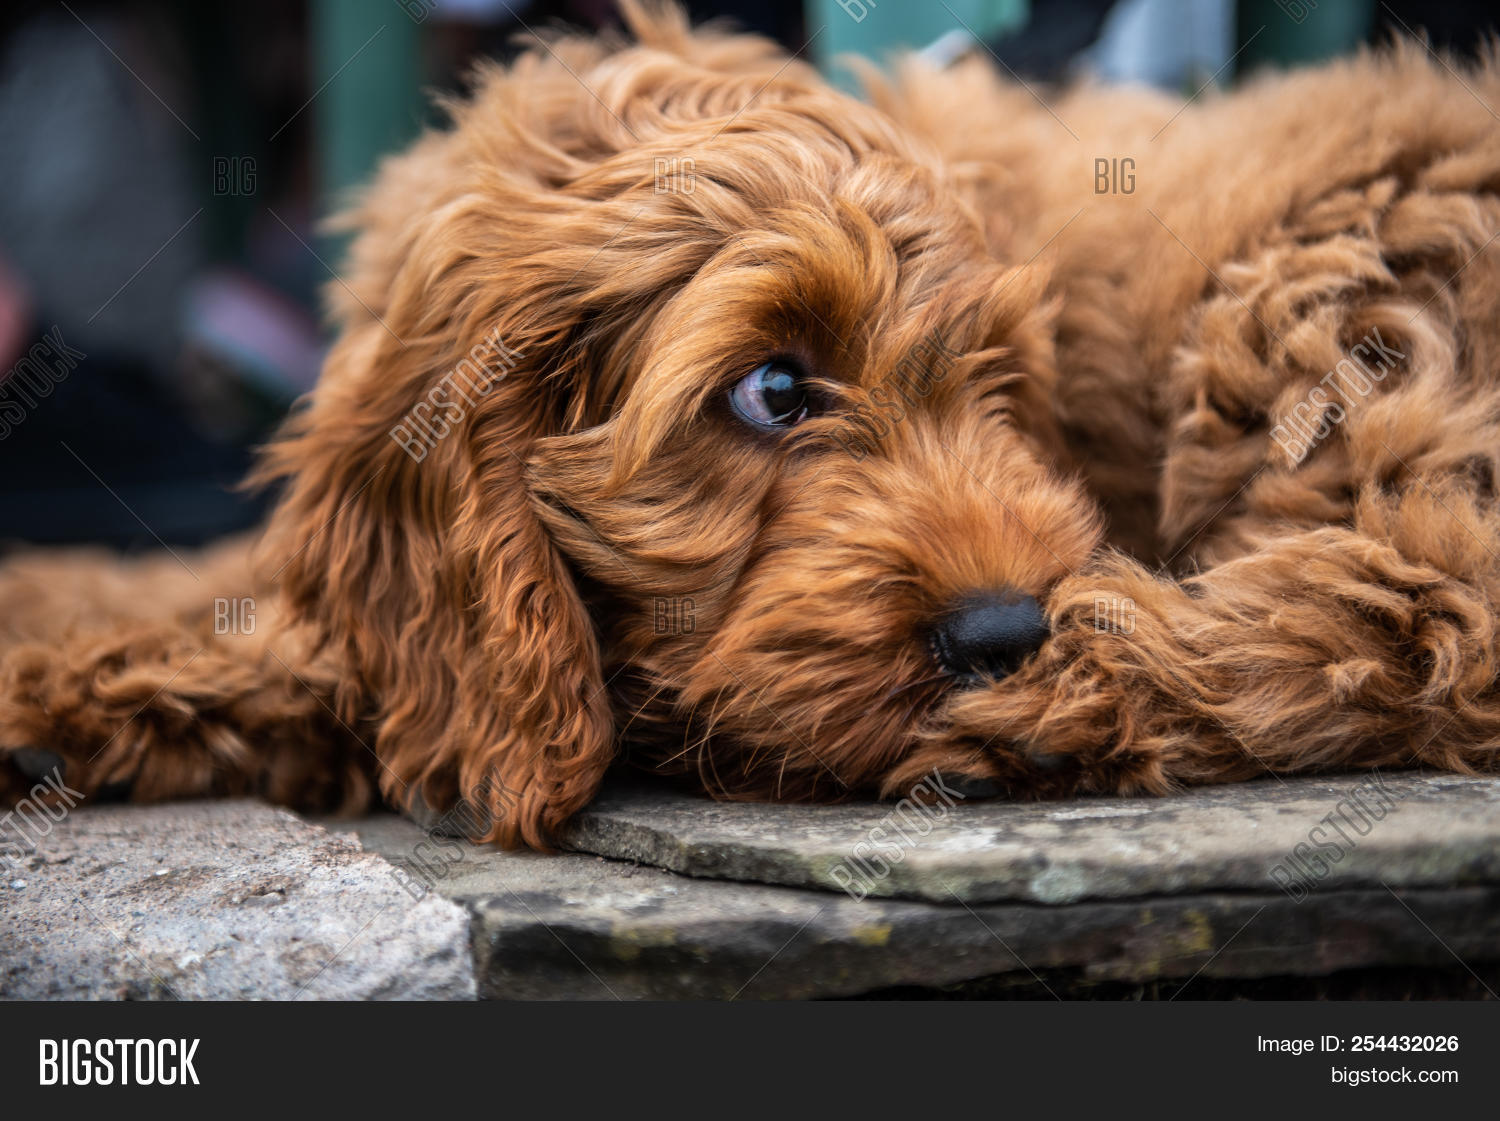 Red Cockapoo Puppy Image Photo Free Trial Bigstock